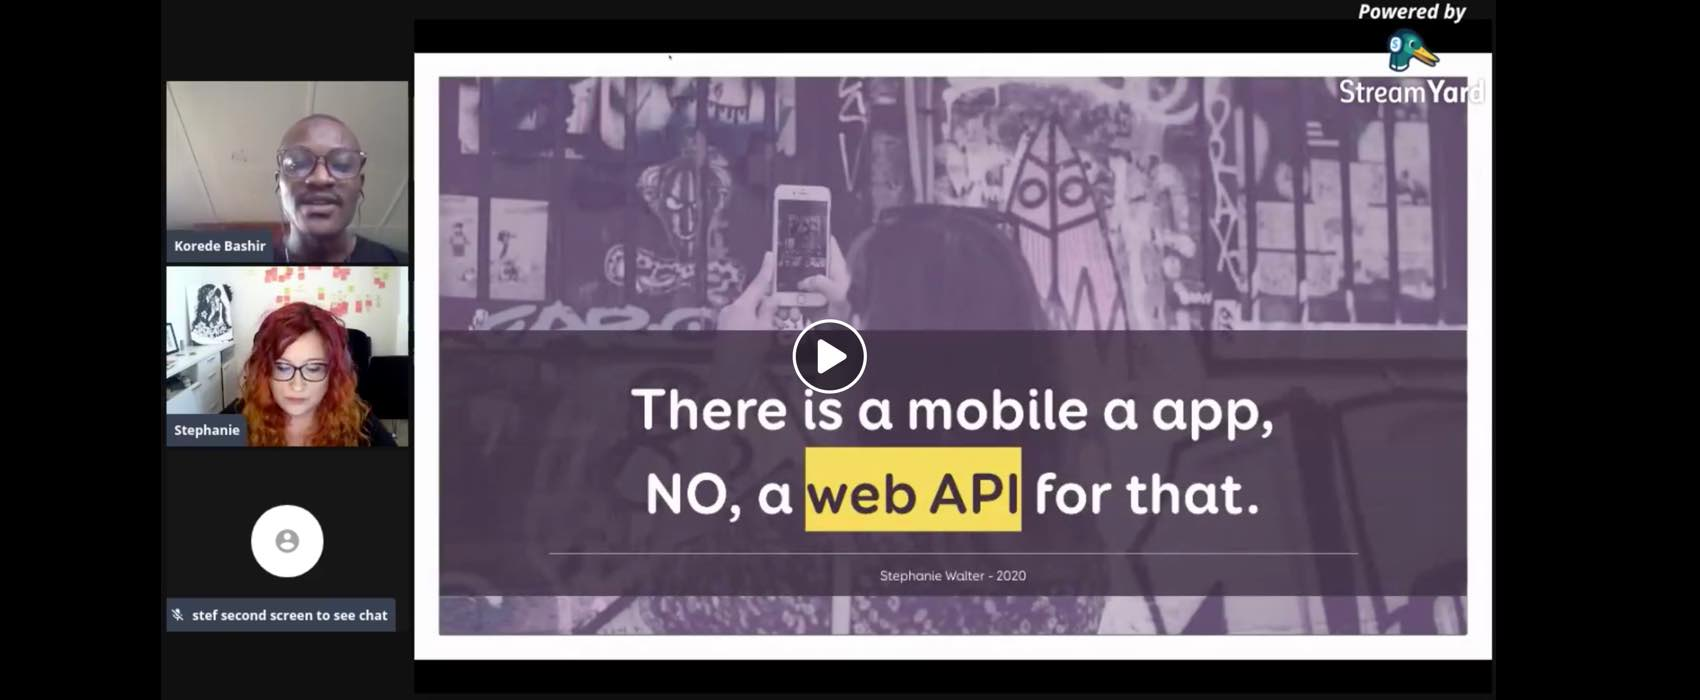 There is an app, NO, a web API for that – conference talk